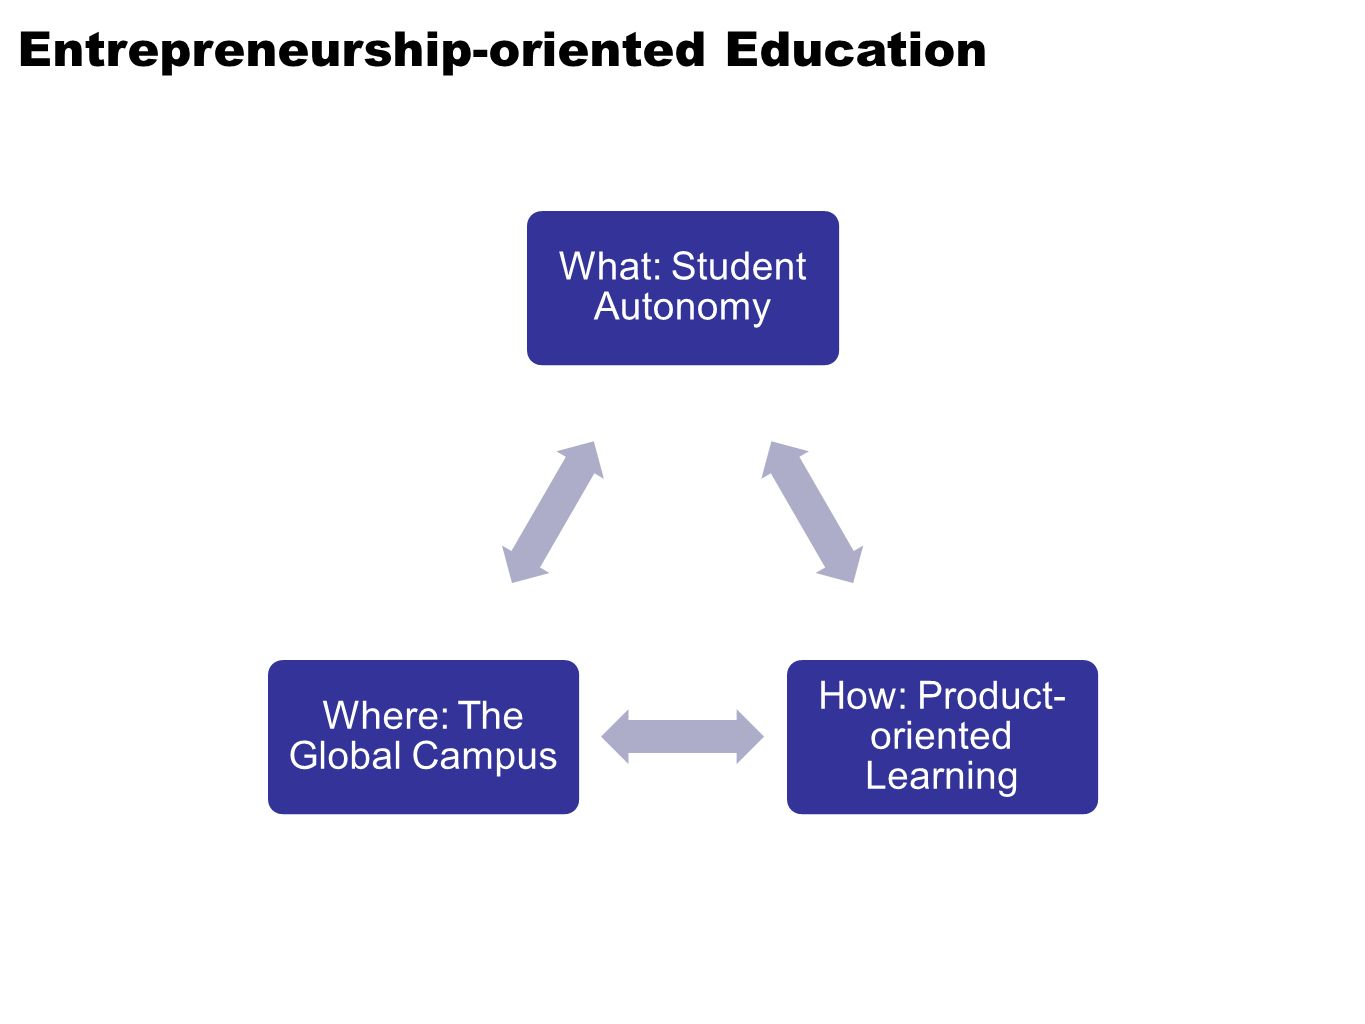 Entrepreneurship-oriented Education